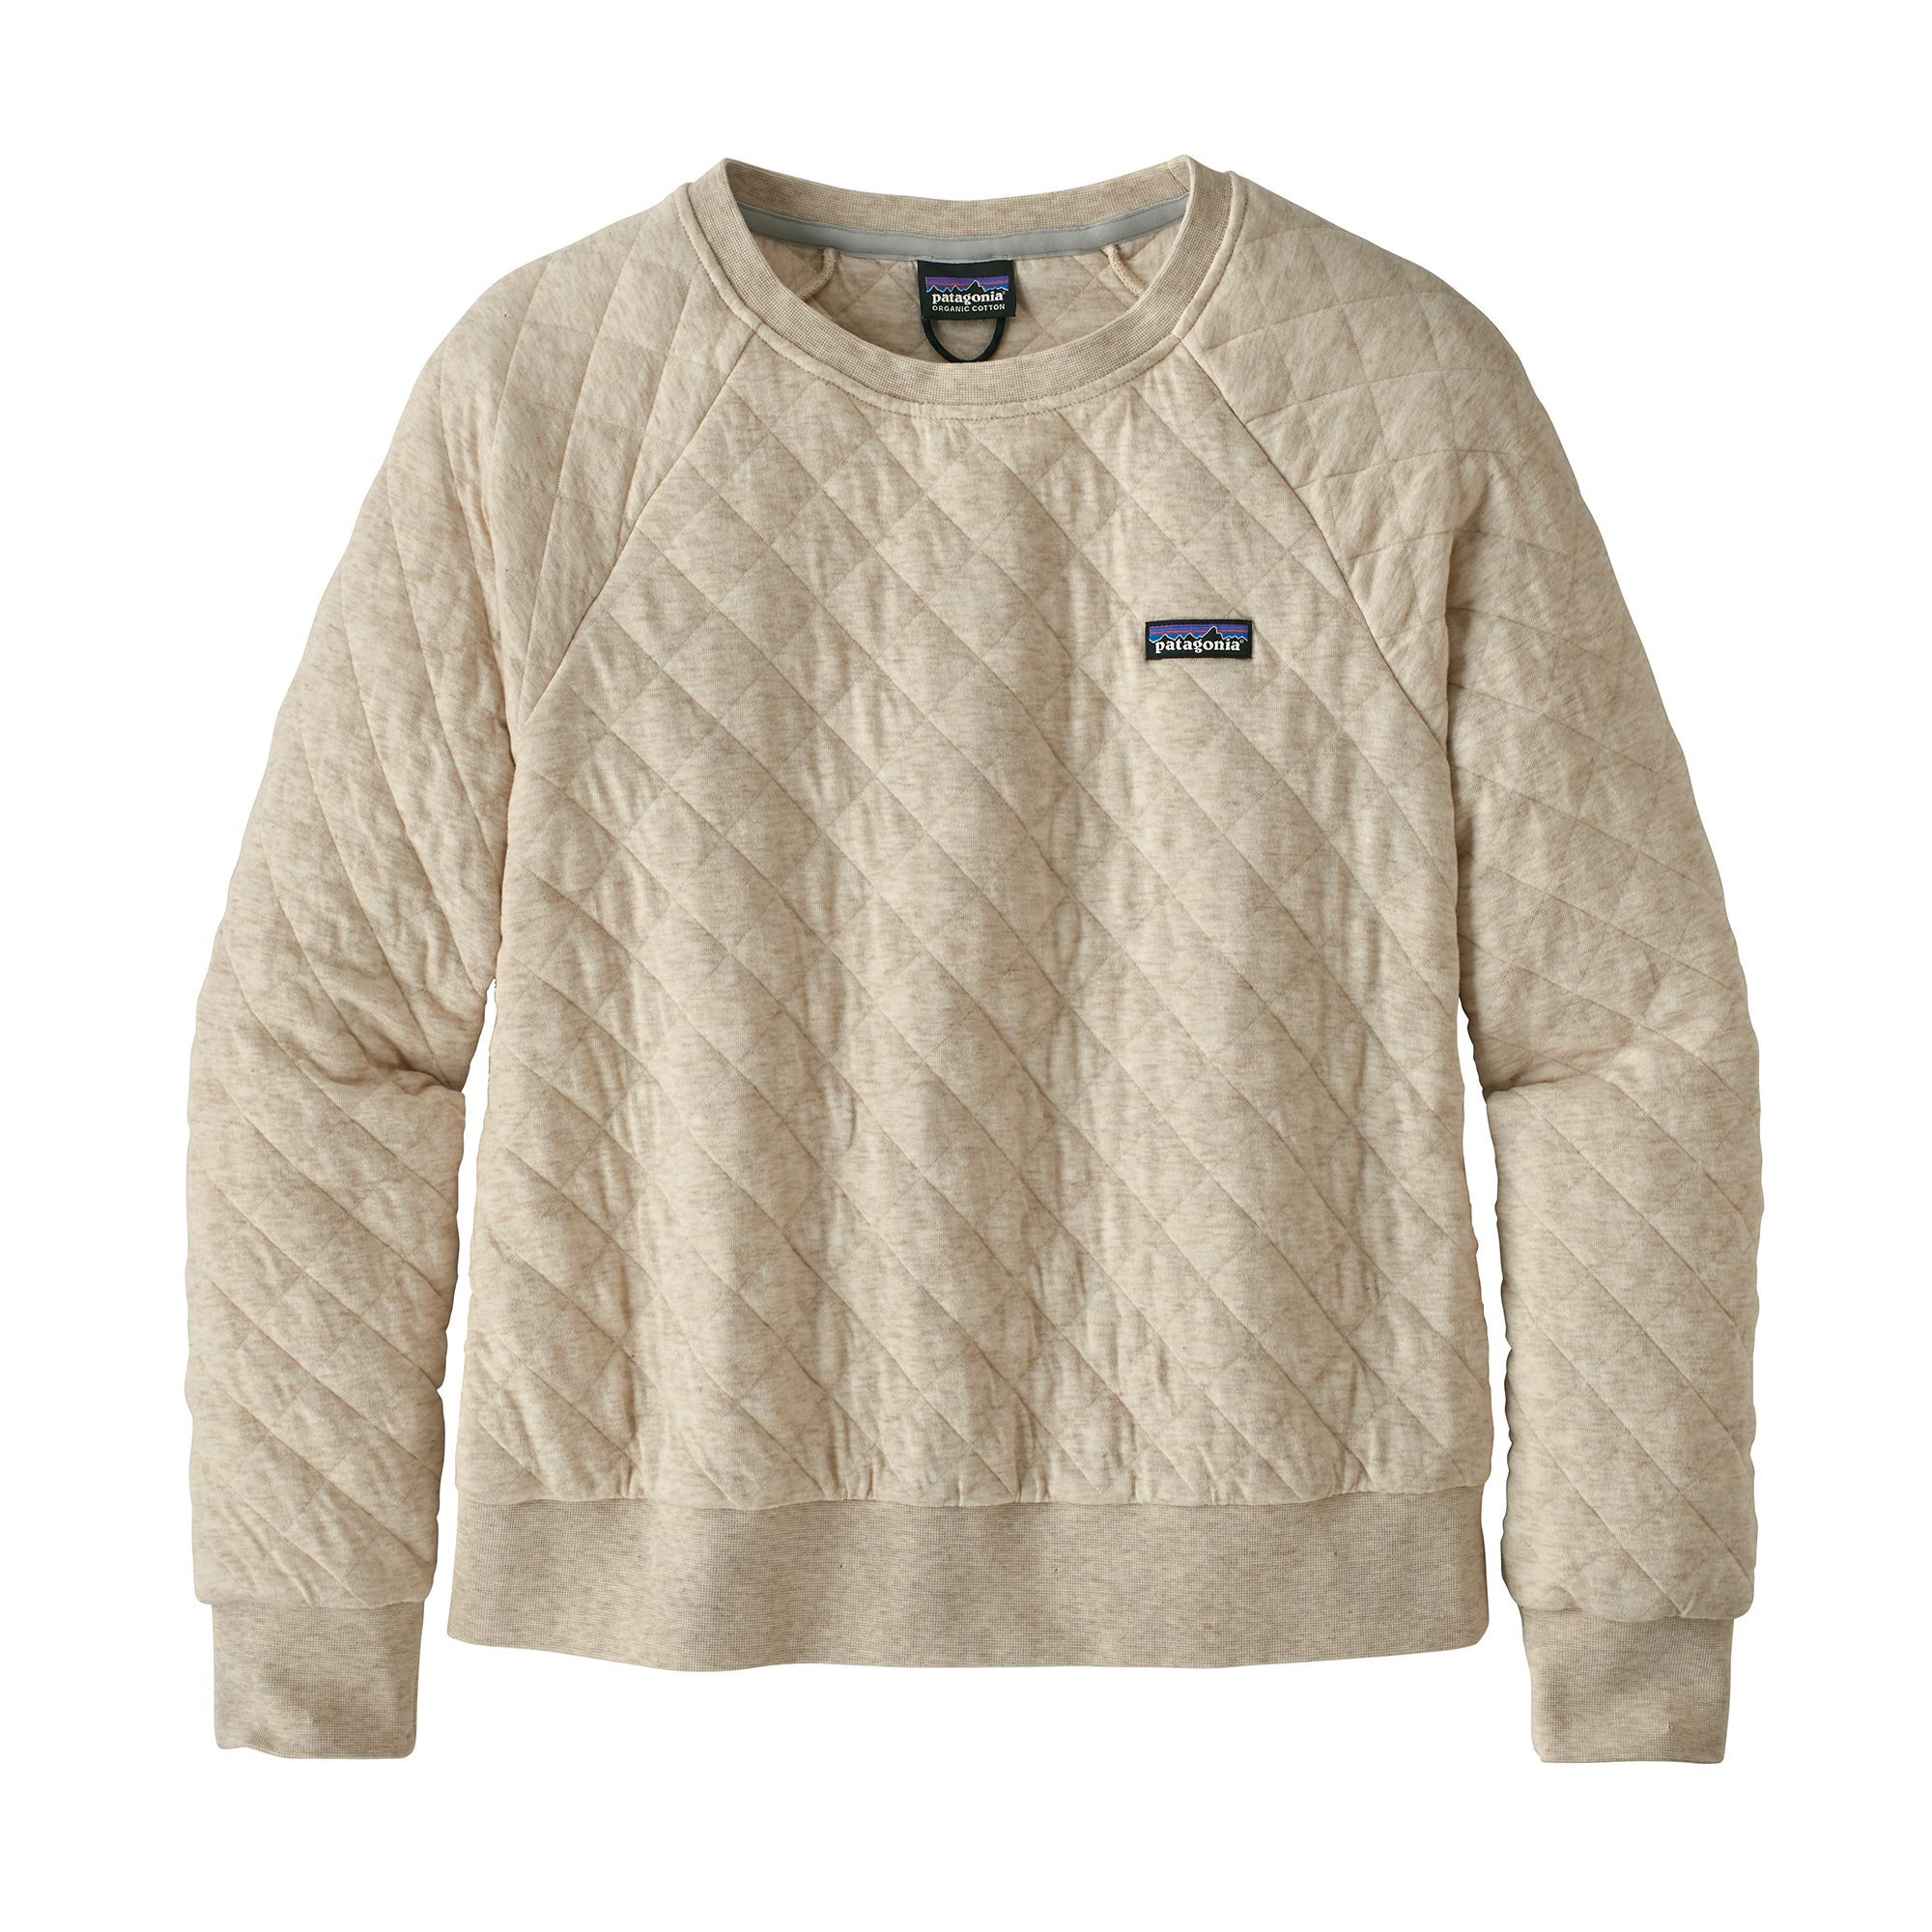 This No Nonsense Sweatshirt Is Made More Supple With A